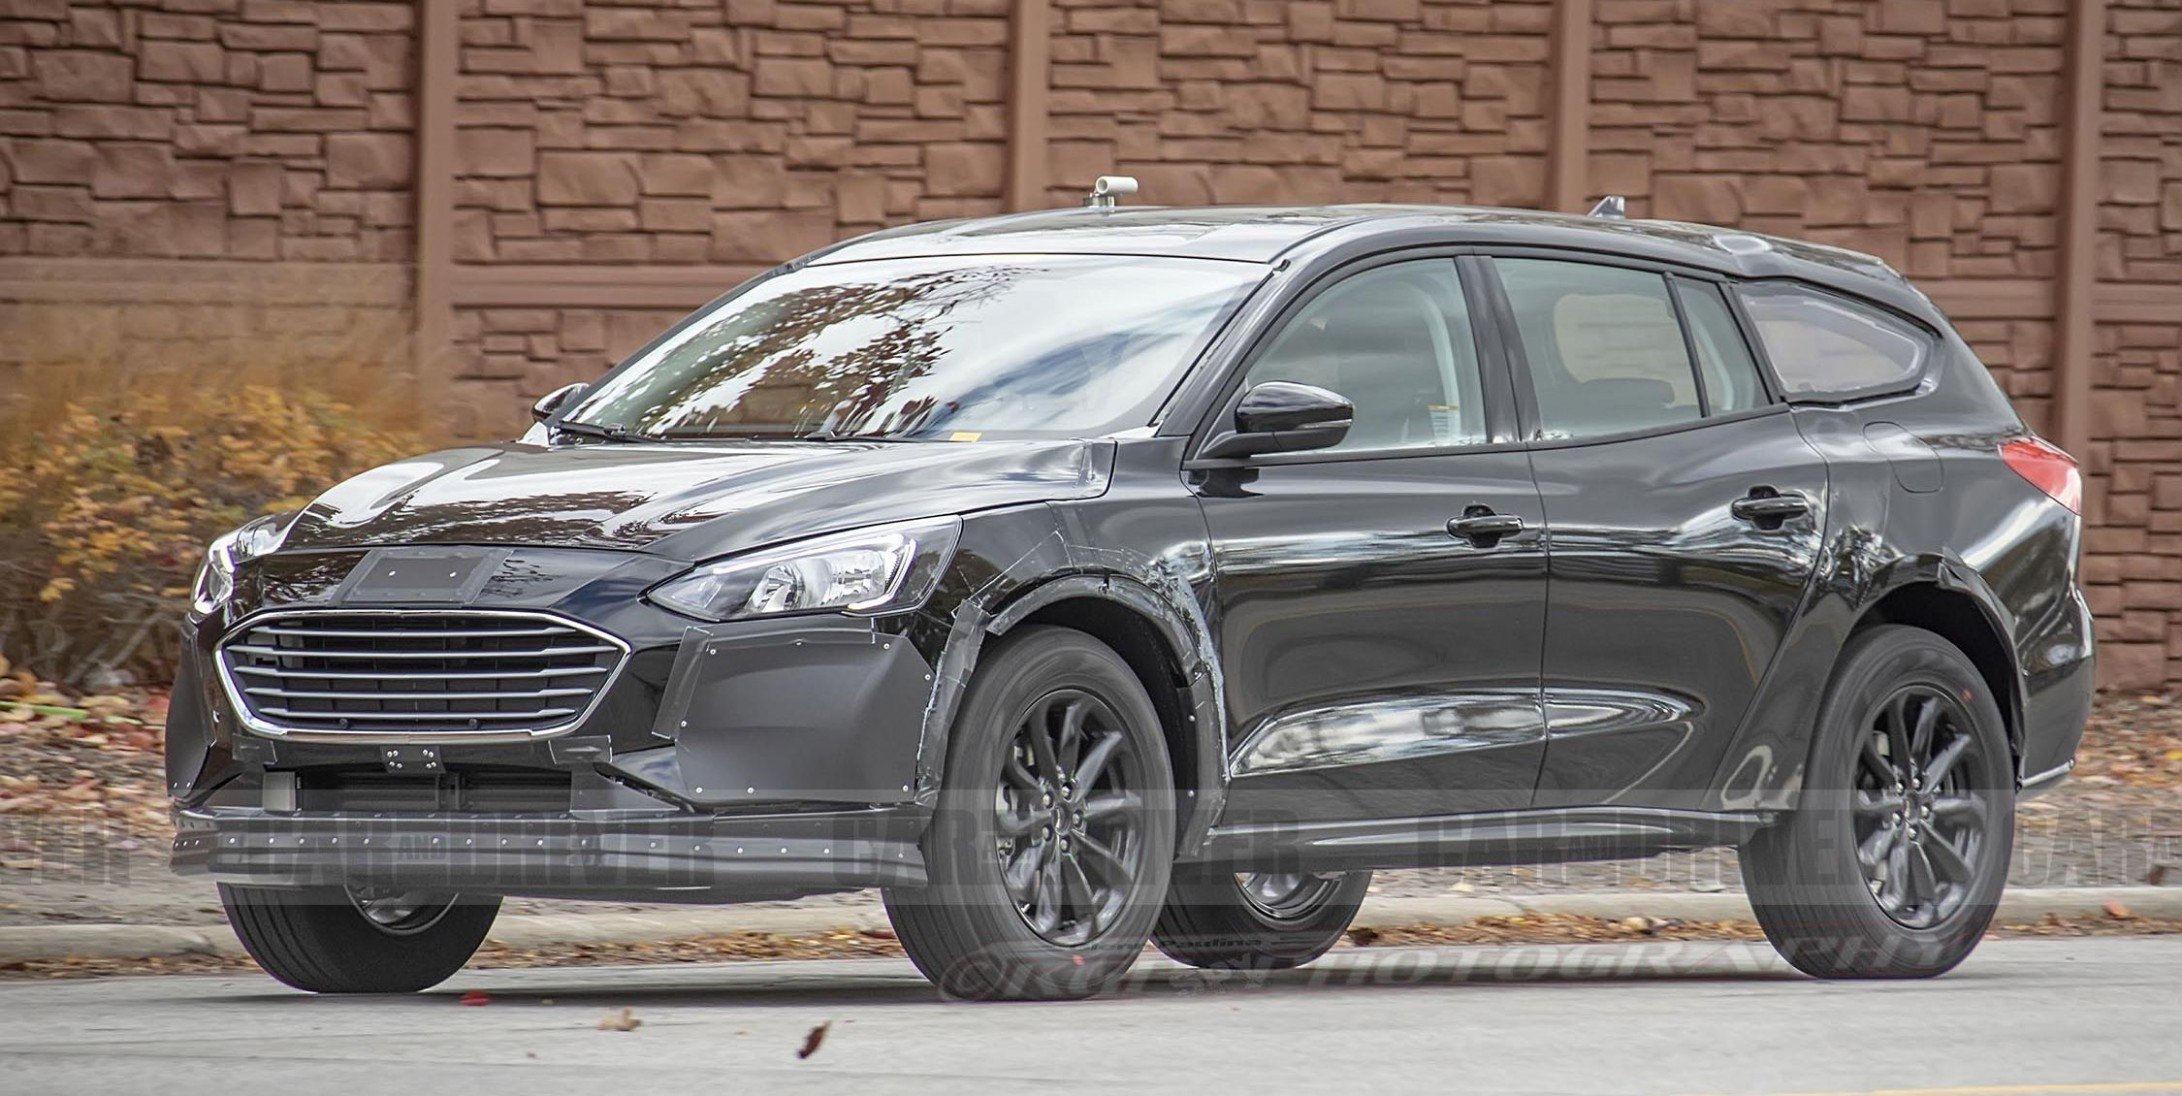 Next Ford Fusion Takes Shape as a Subaru Outback–Style Lifted Wagon - Ford Fusion 2021